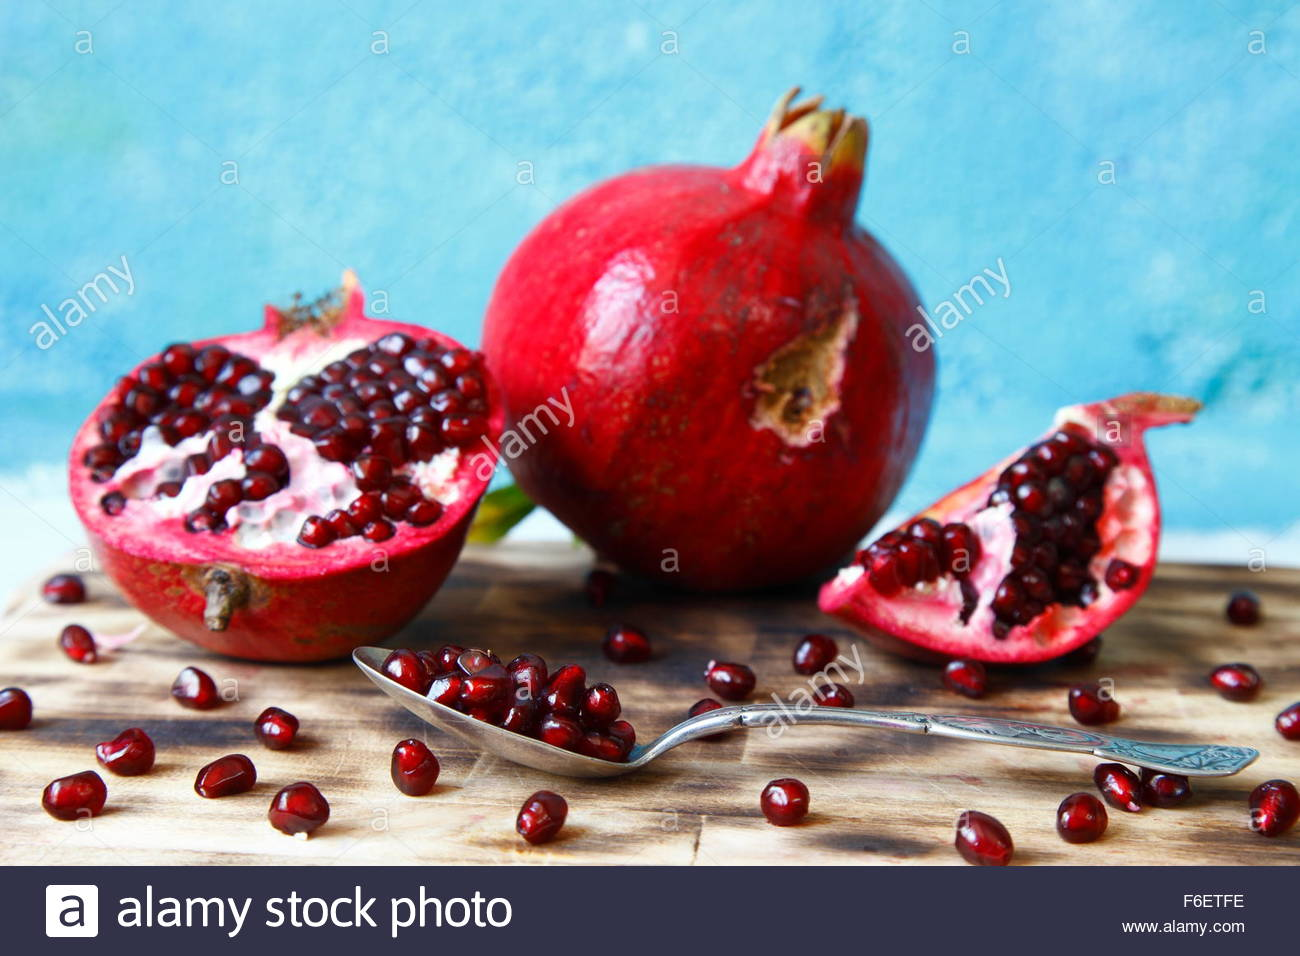 pomegranate macro photographed in daylight, visual, color image - Stock Image